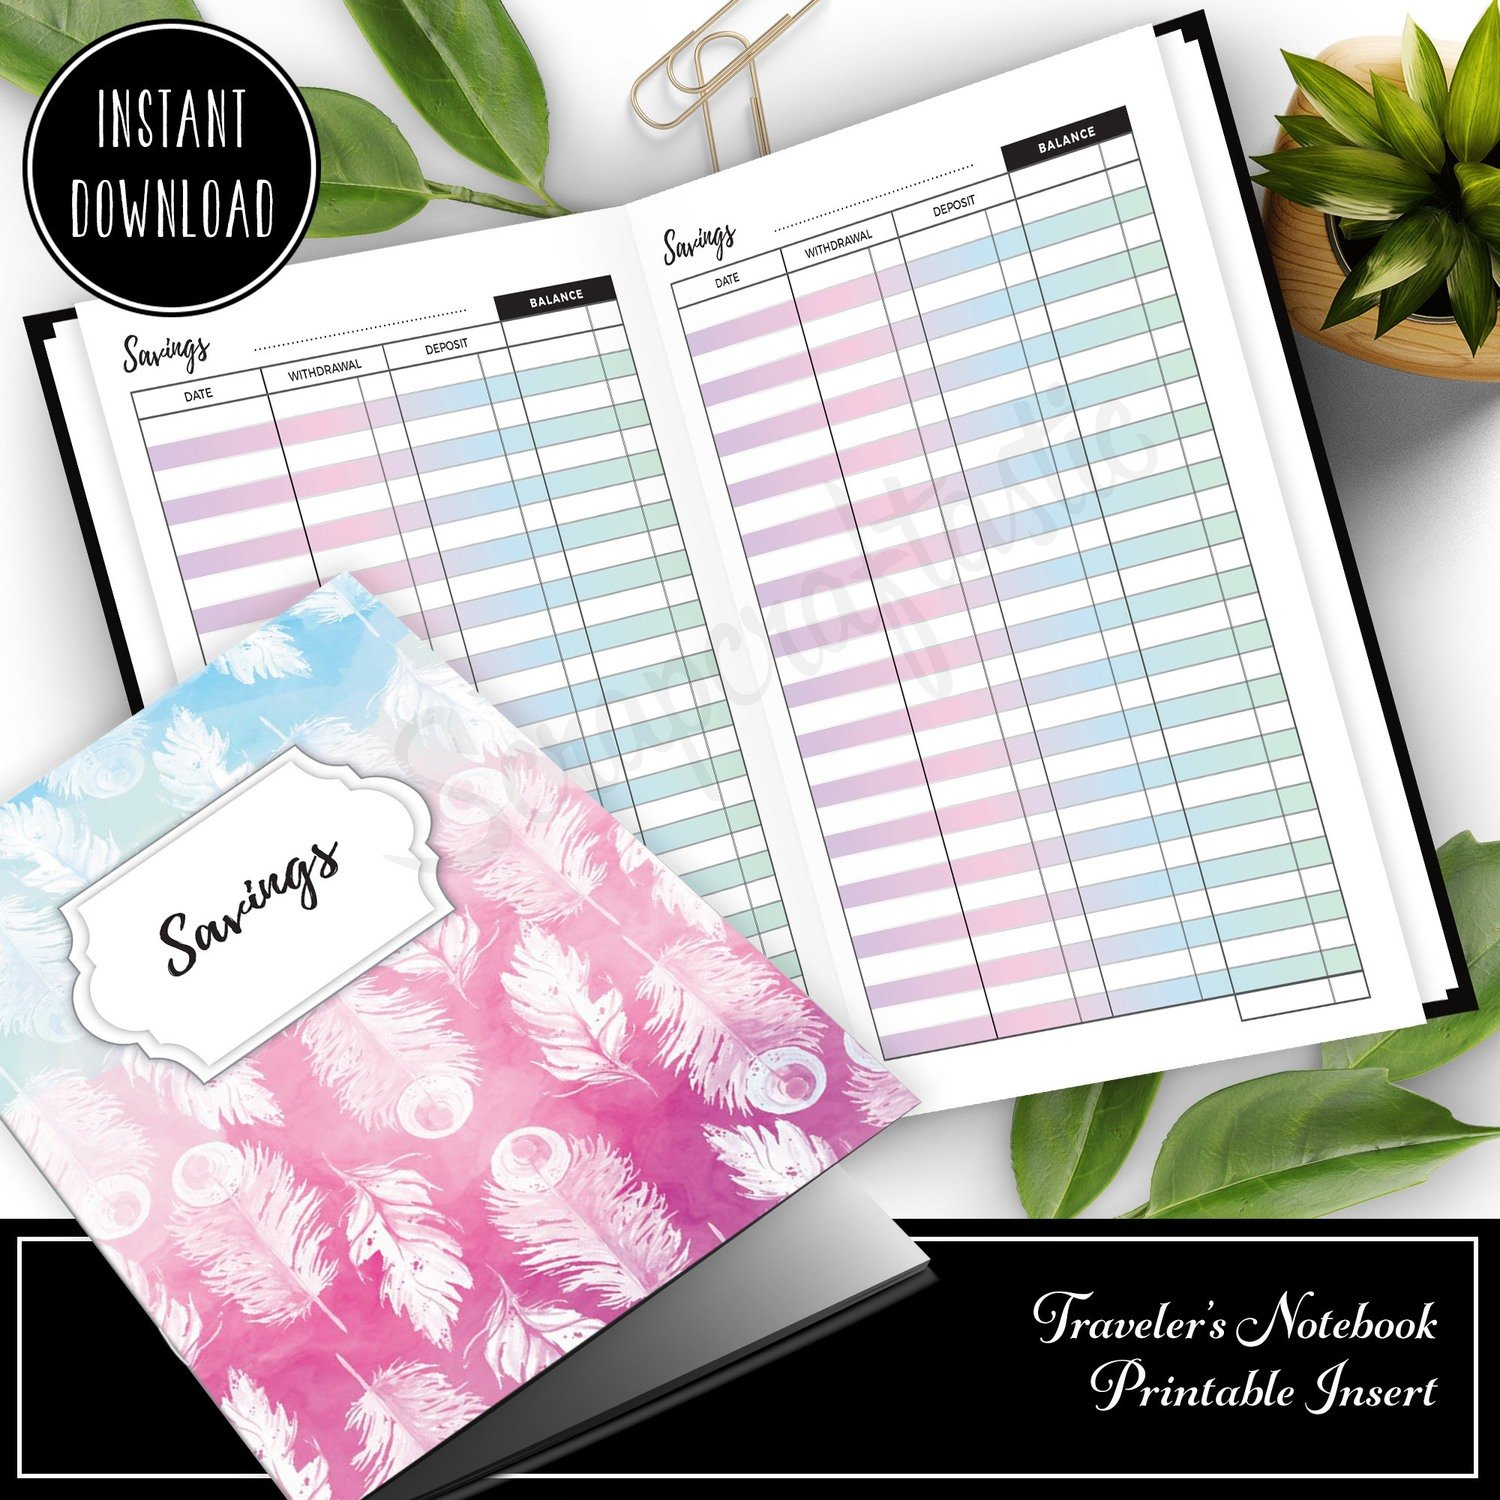 HALF LETTER TN or RINGS - Unicorn Magic Savings Log Printable Insert (Binder or Traveler's Notebook)